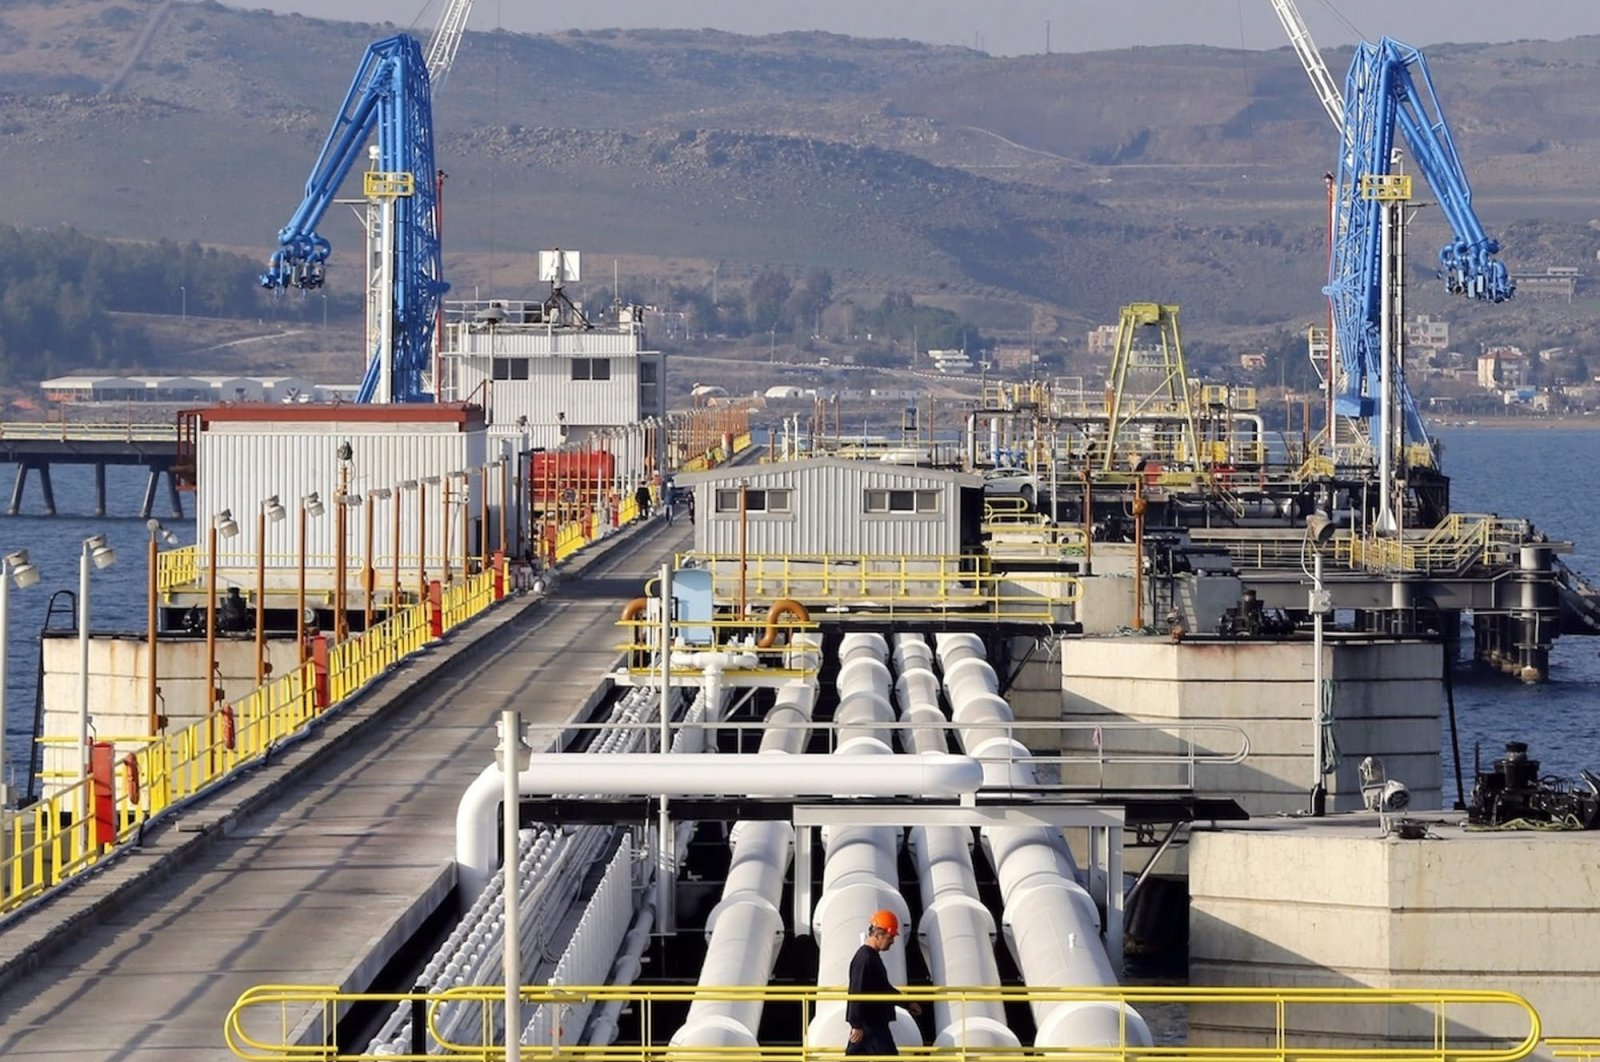 A general view at Turkey's Mediterranean port of Ceyhan, which is run by state-owned Petroleum Pipeline Corporation (BOTAŞ), some 70 kilometers (43.5 miles) from Adana, Feb. 19, 2014. (Reuters Photo)